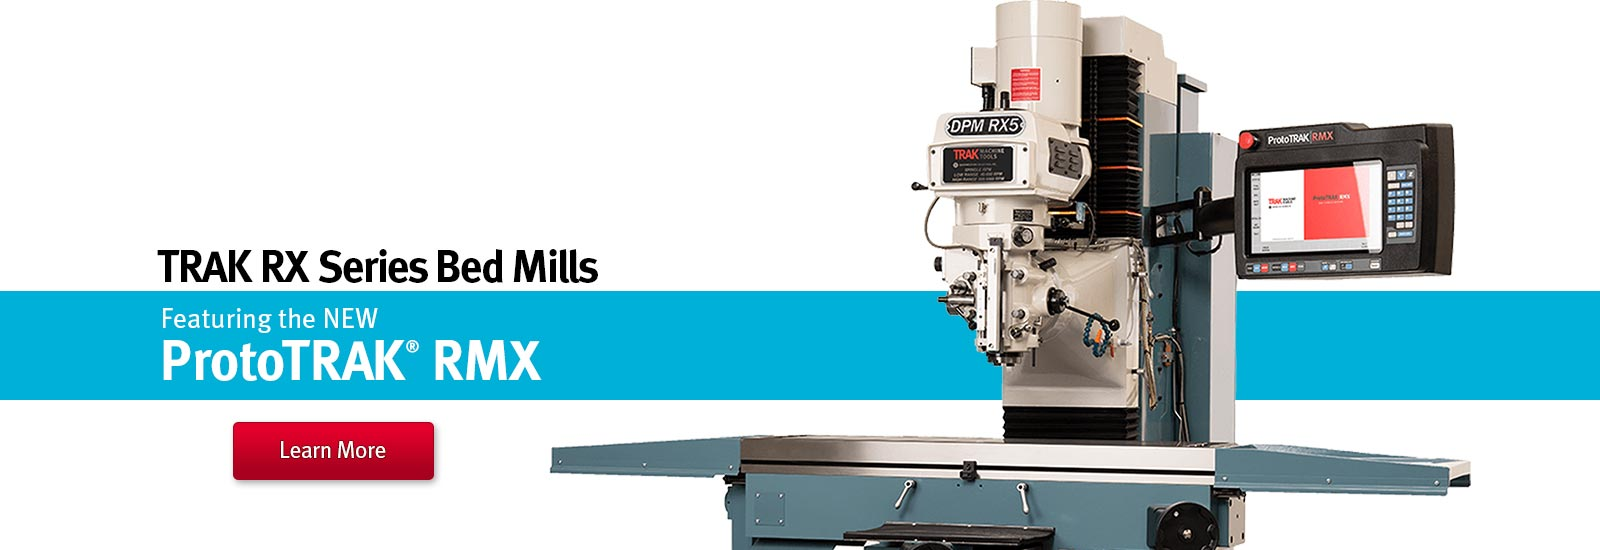 TRAK DPMRX Series Bed Mills featuring the ProtoTRAK RMX